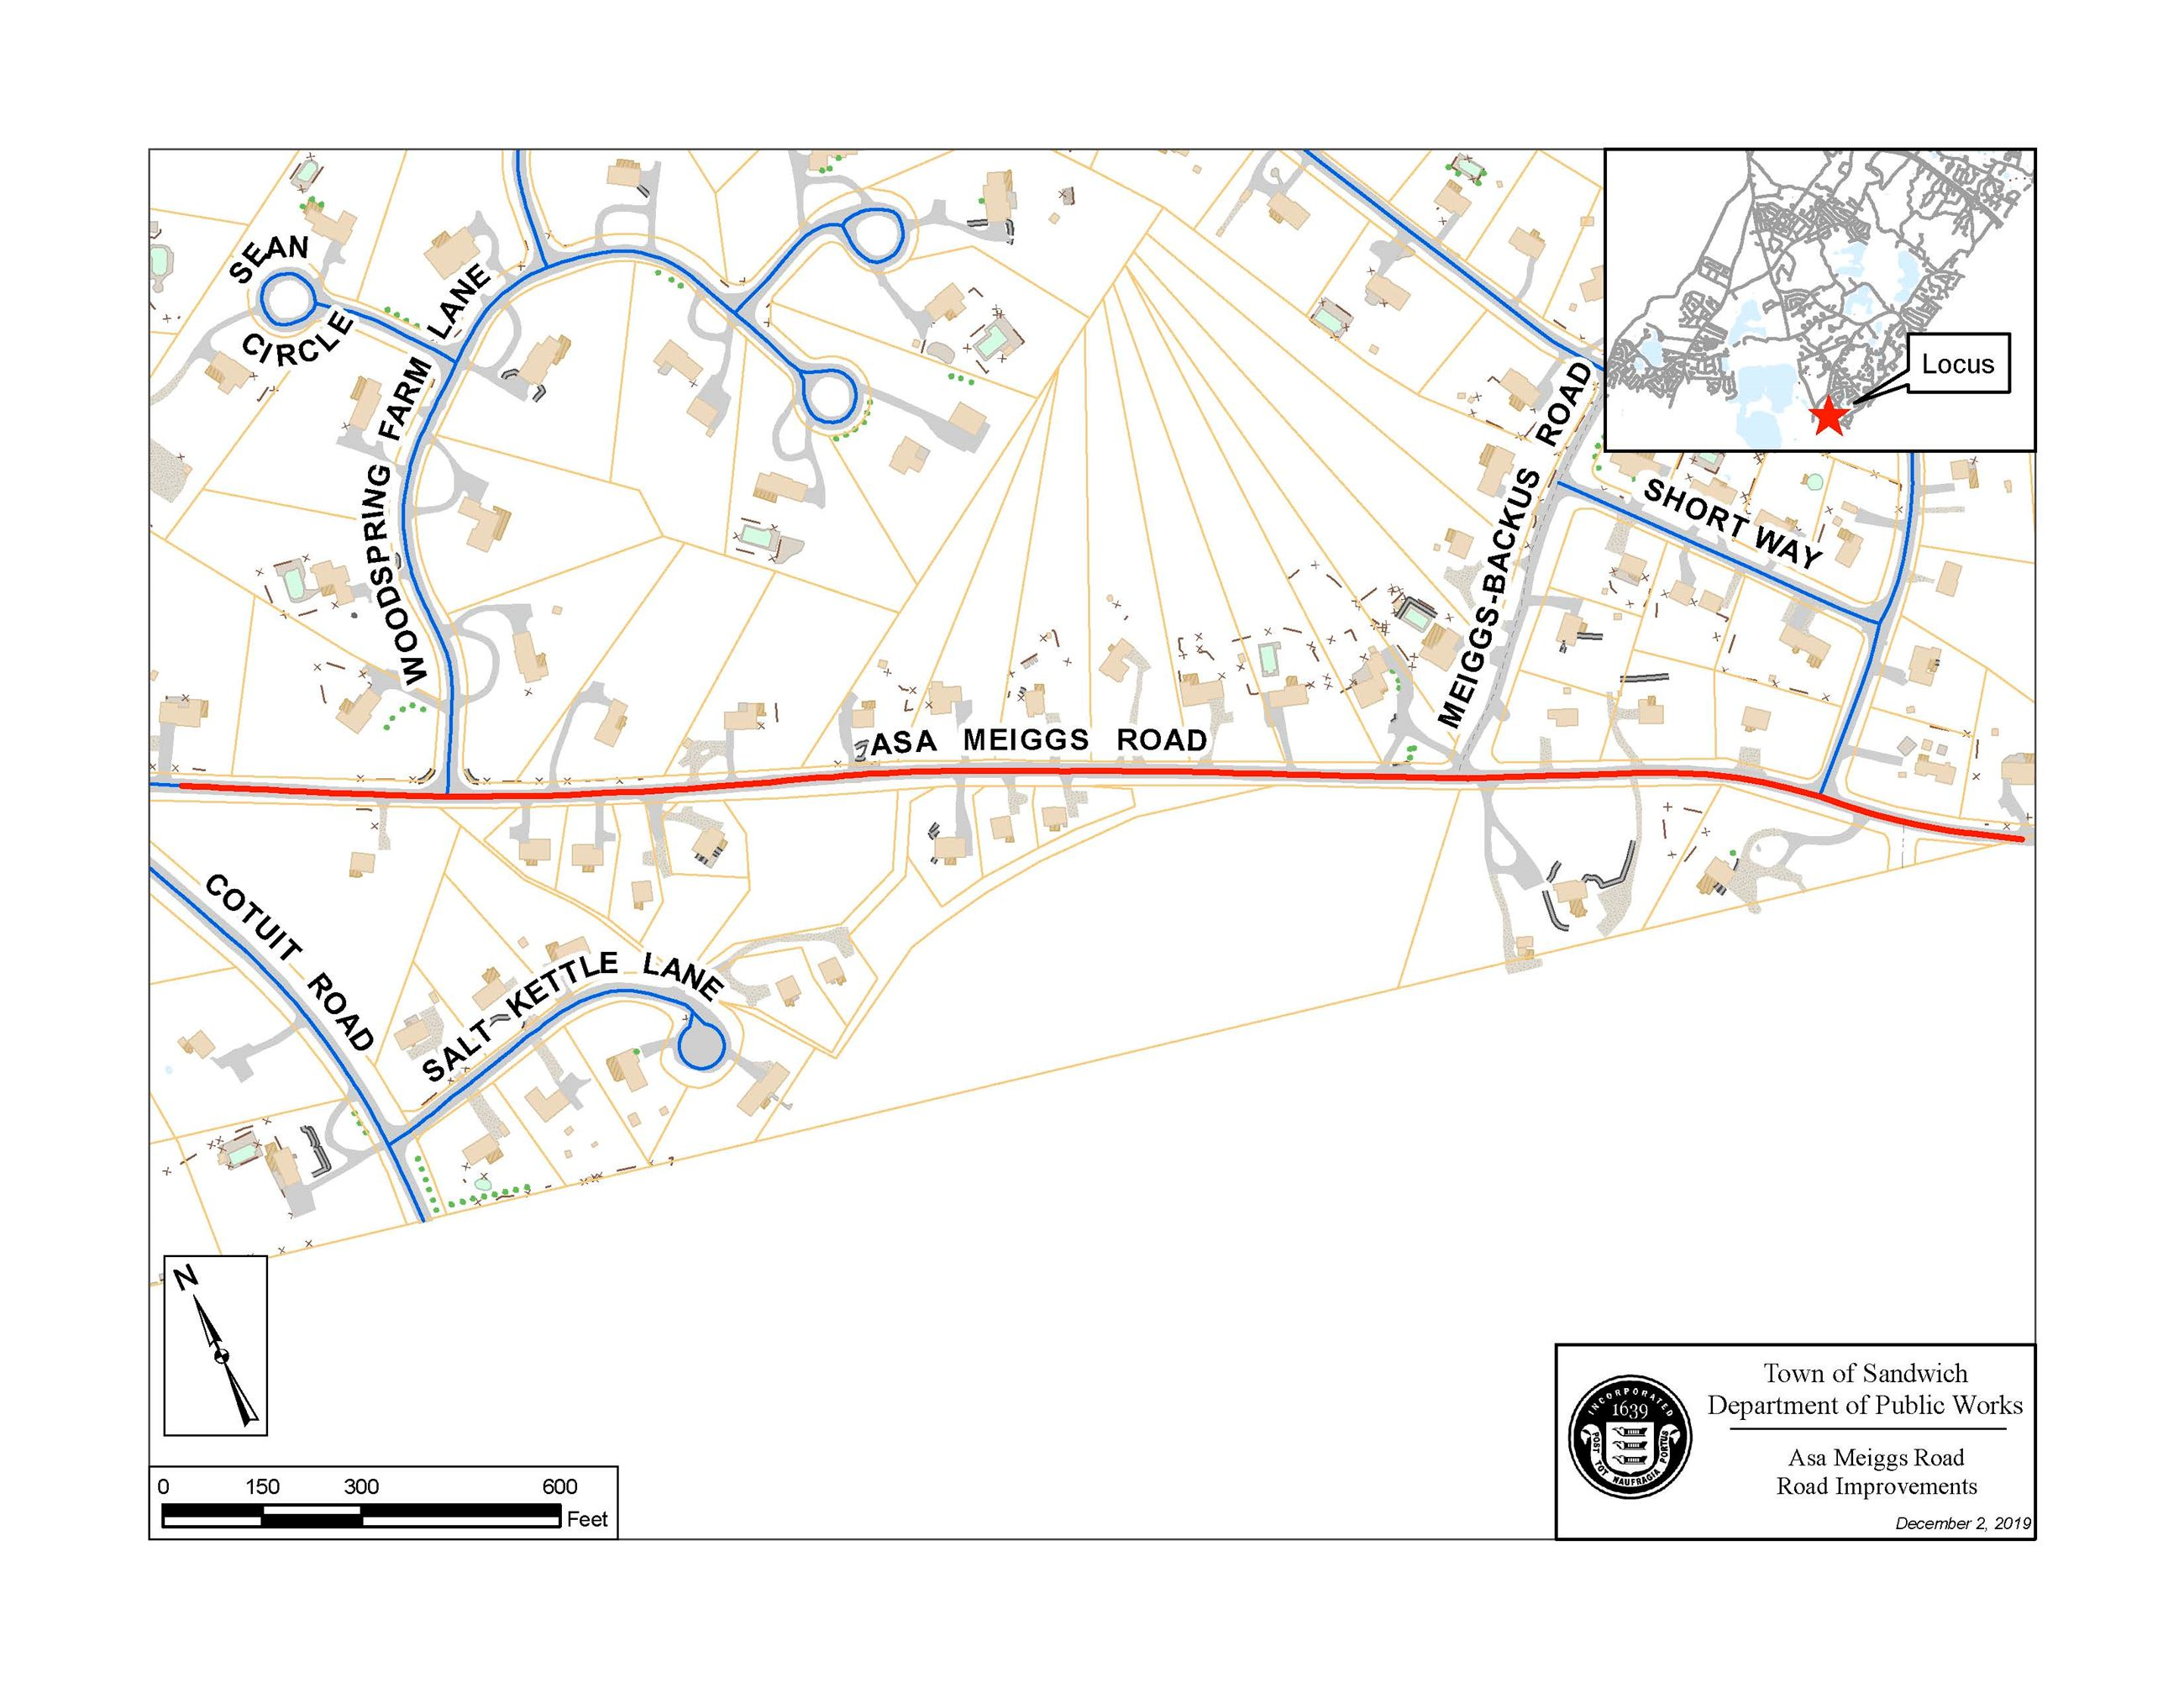 sketch_road improvements_asa meiggs